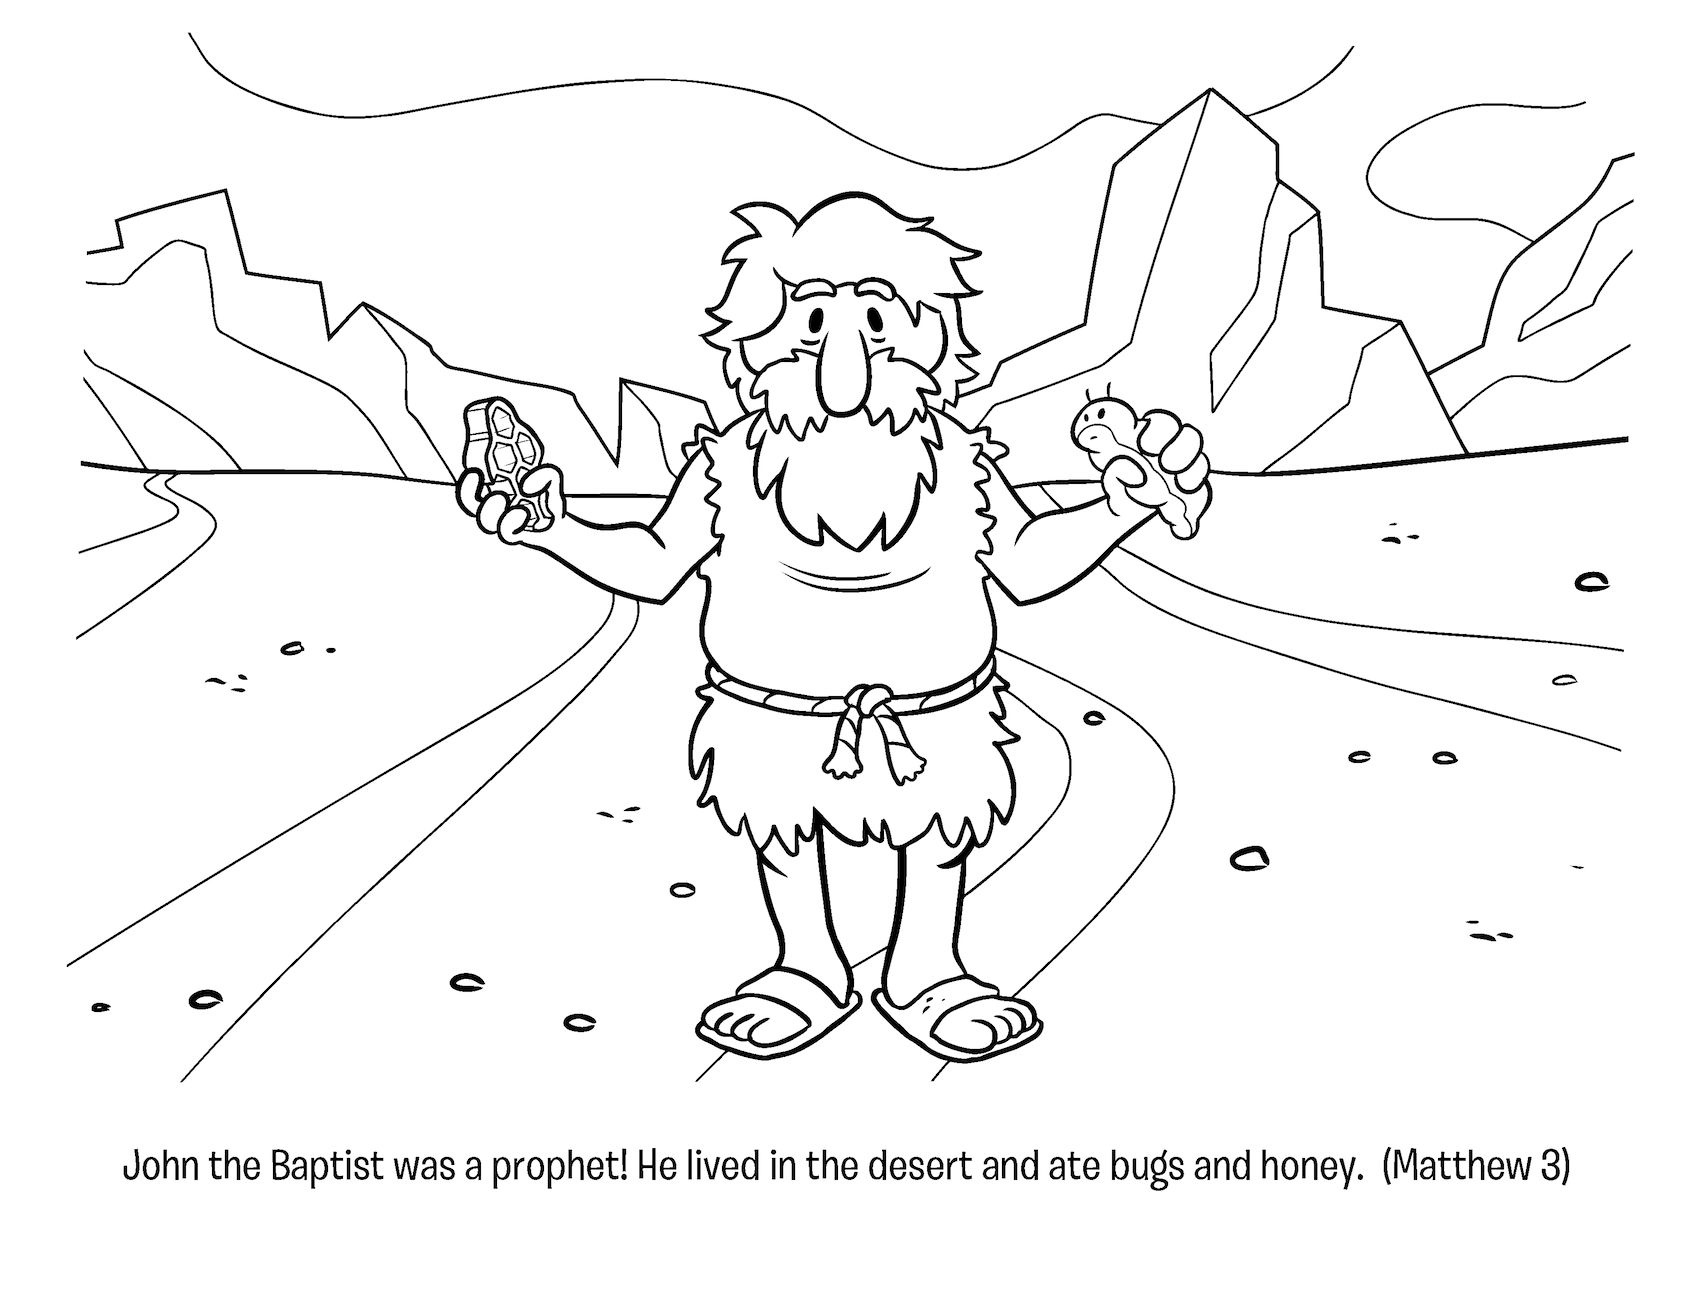 Free coloring pages john the baptist - Todayu0027s Free Activity Is A John The Baptist Coloring Page Download The Coloring Page Here